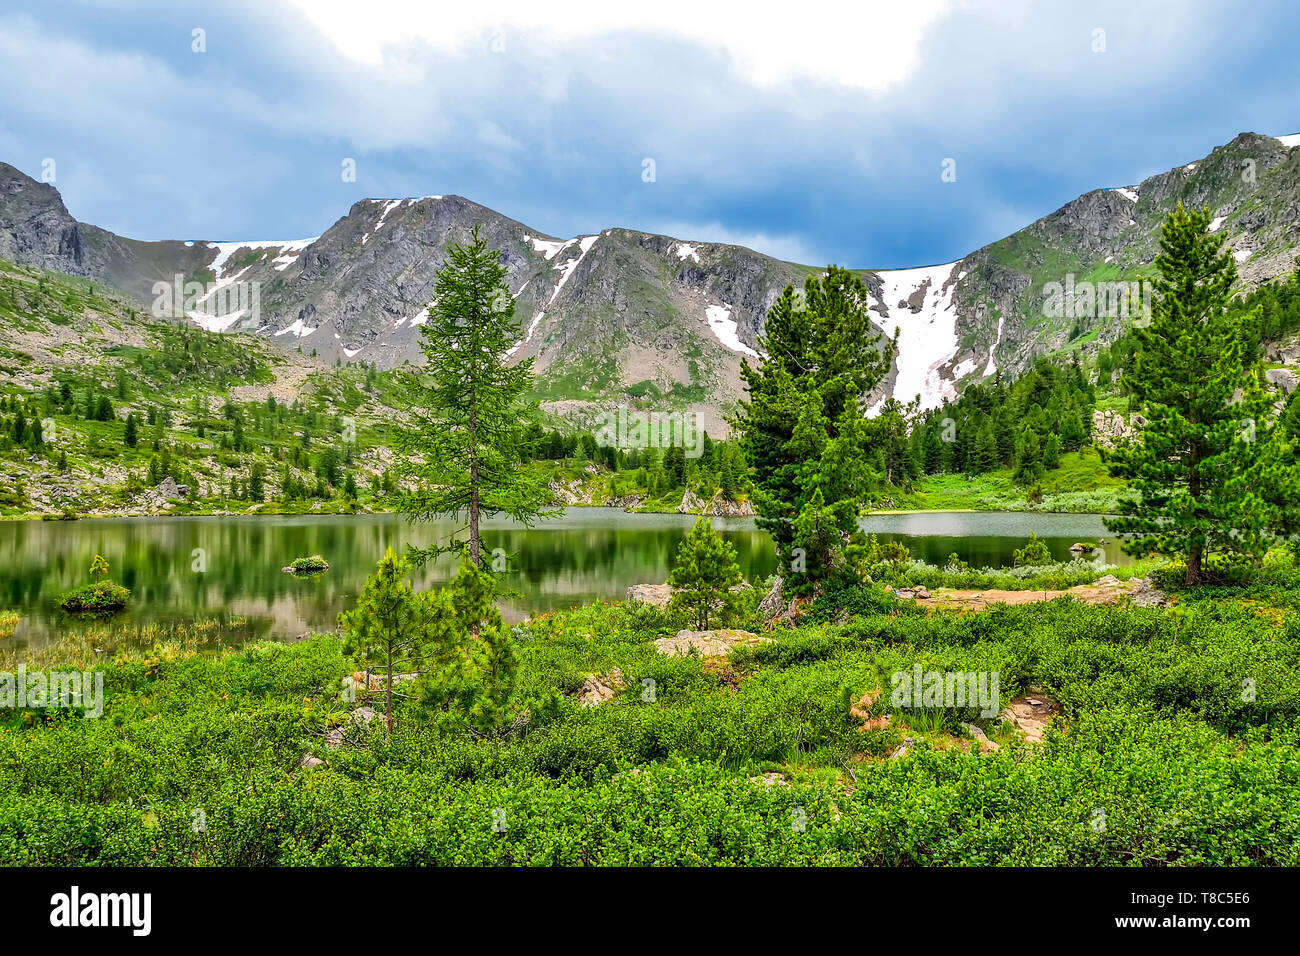 One from seven cleanest mountain Karakol lakes, located in the valley, at the foot of the Bagatash pass, Altai Mountains, Russia. Snow covered peaks a - Stock Image